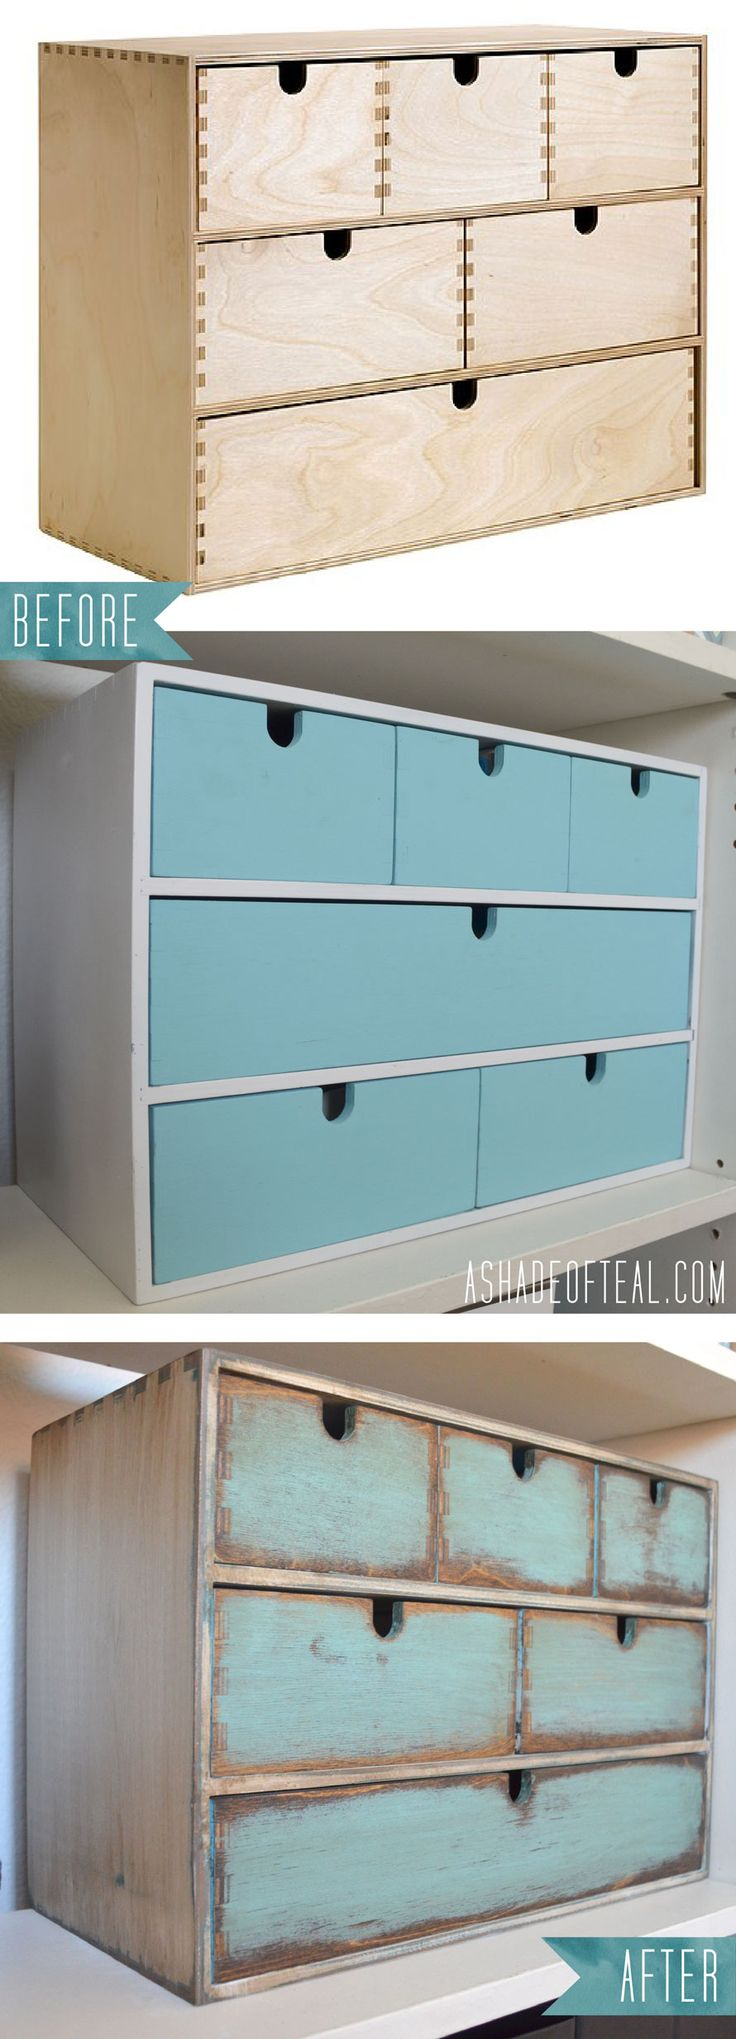 Another IKEA Update- Turn a old IKEA Moppe Organizer into a modern rustic Makeover   A Shade Of Teal